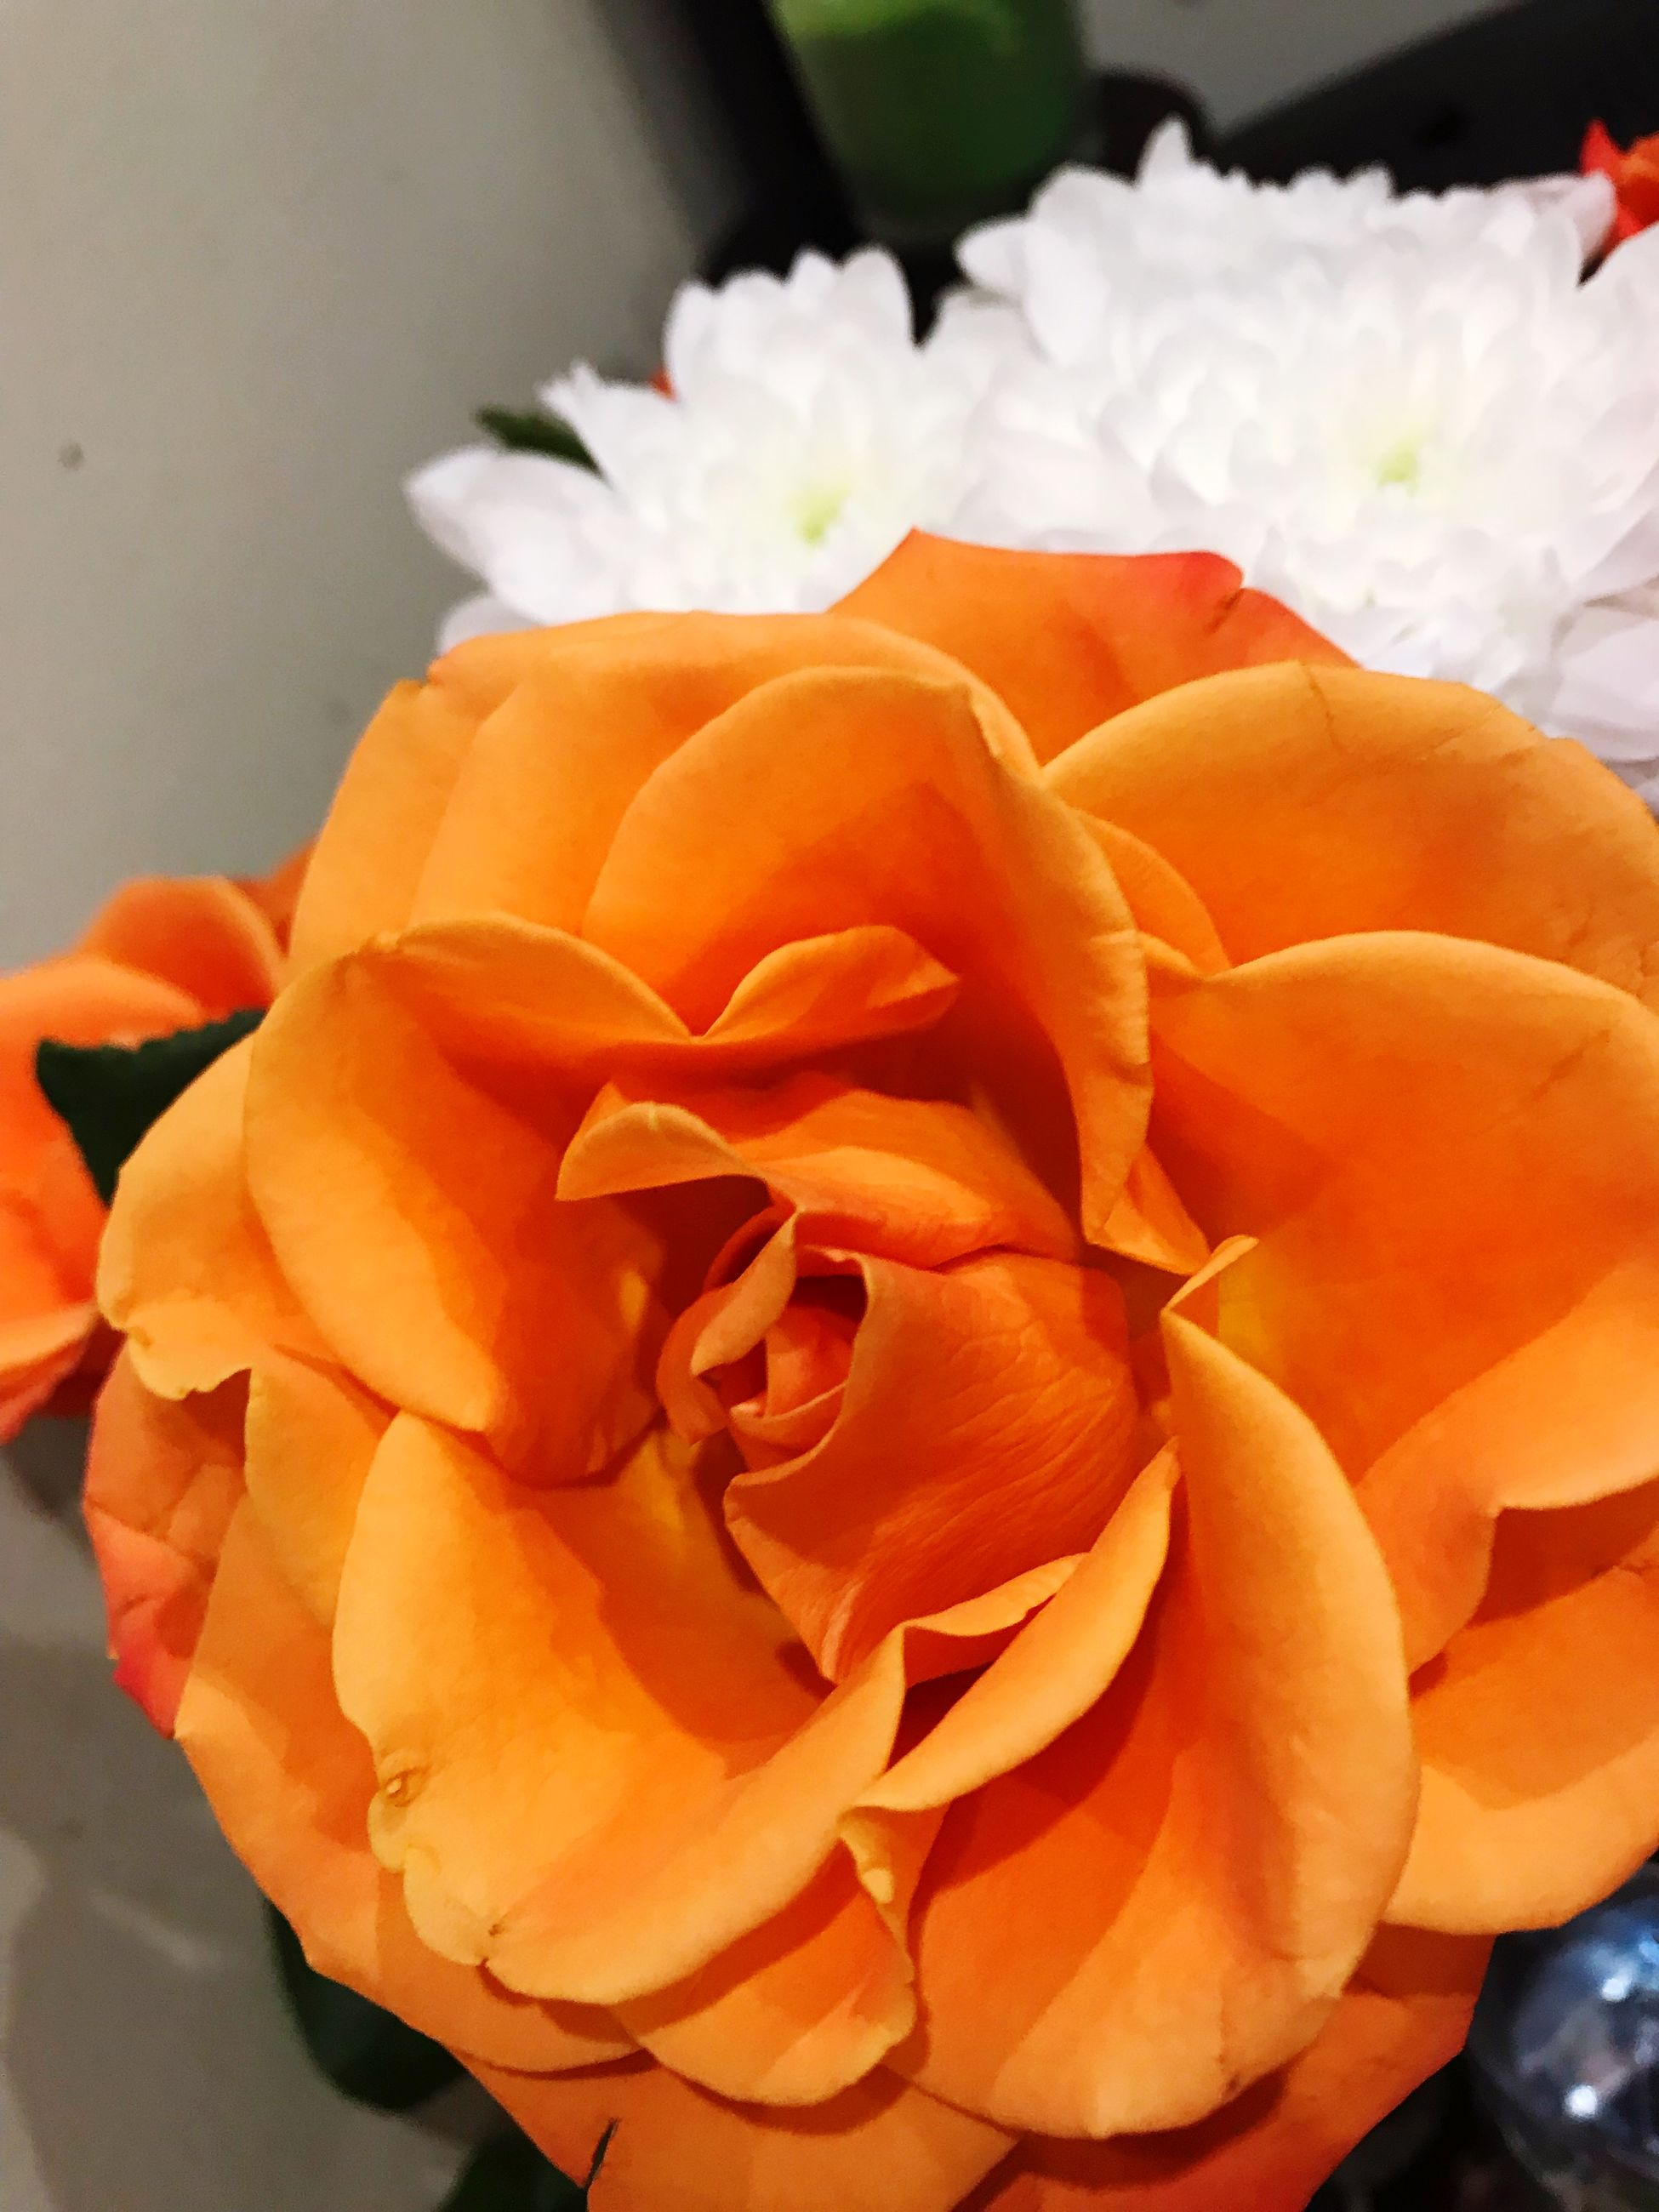 flower, flowering plant, petal, freshness, flower head, beauty in nature, plant, fragility, vulnerability, inflorescence, close-up, orange color, rose, rose - flower, no people, nature, growth, focus on foreground, outdoors, day, bouquet, flower arrangement